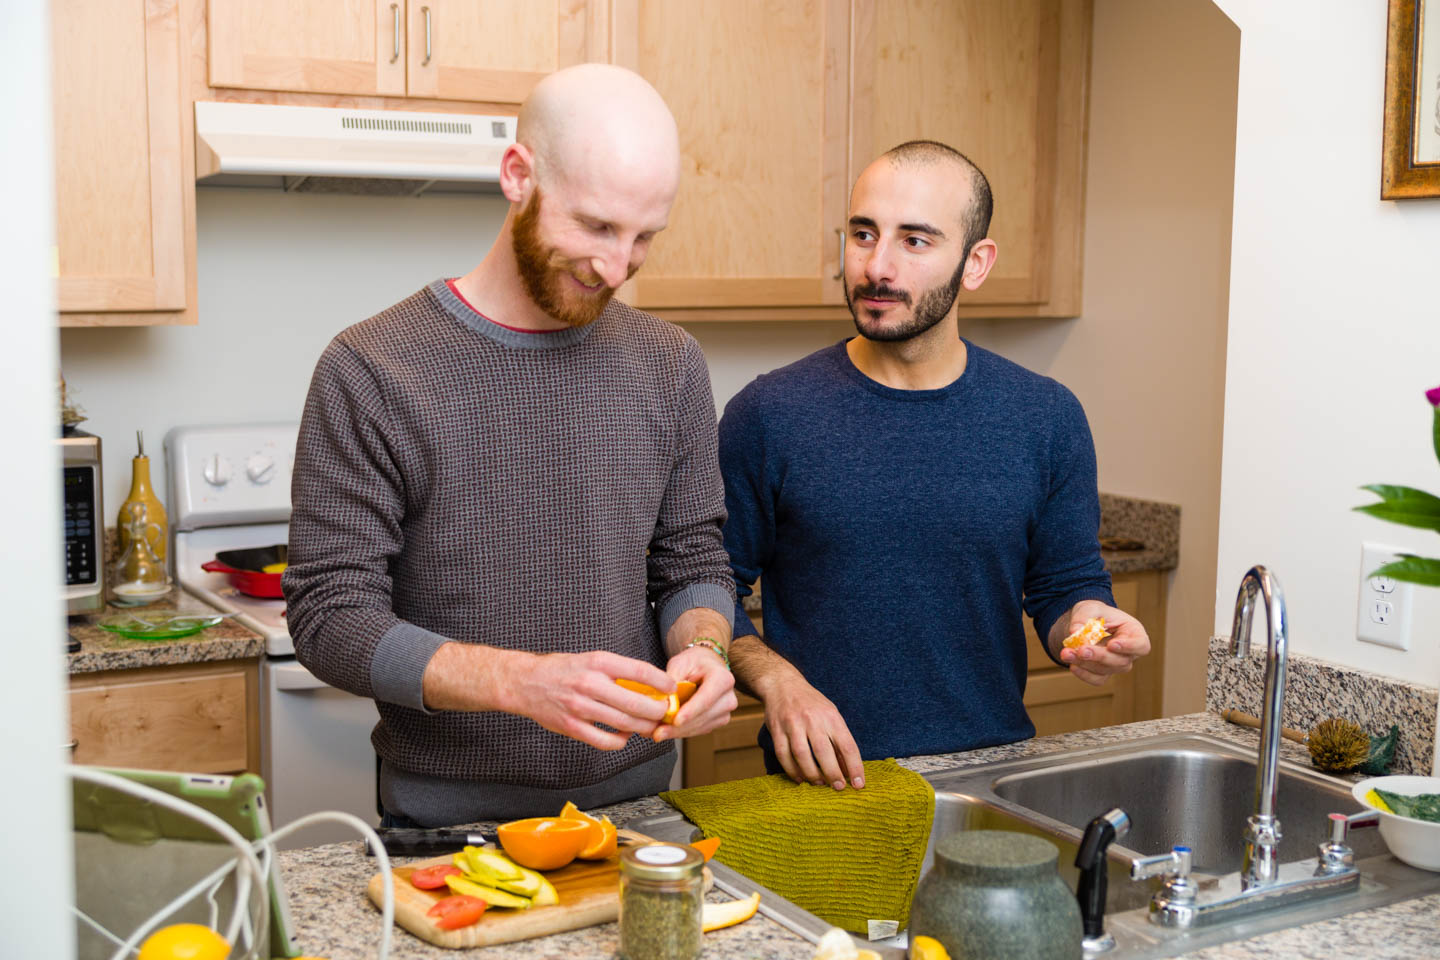 Derek Kitchen and Moudi Sbeity prepare lunch at home